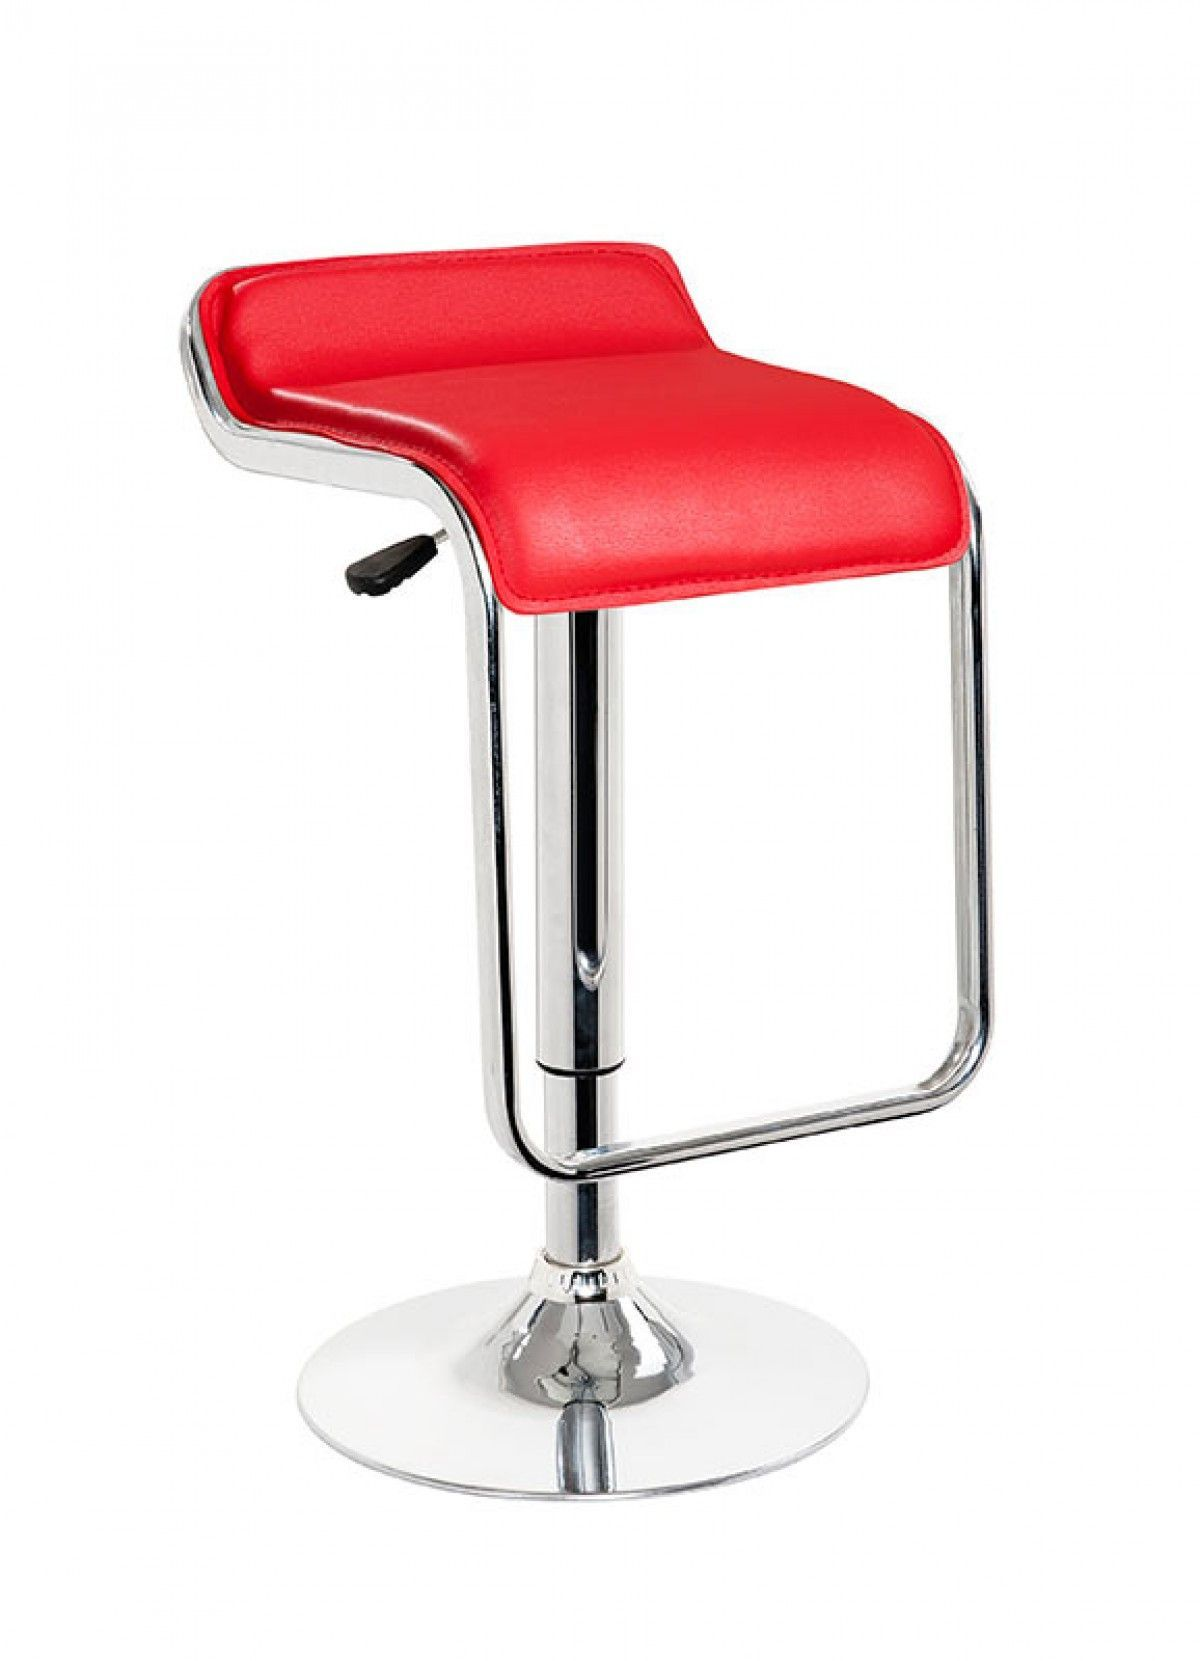 Modrest T1048 Eco Leather Contemporary Barstool Vgcbt1048 Redproduct 15087 Features Contemporary Bar Stoolch Red Bar Stools Bar Stools Contemporary Bar Stools